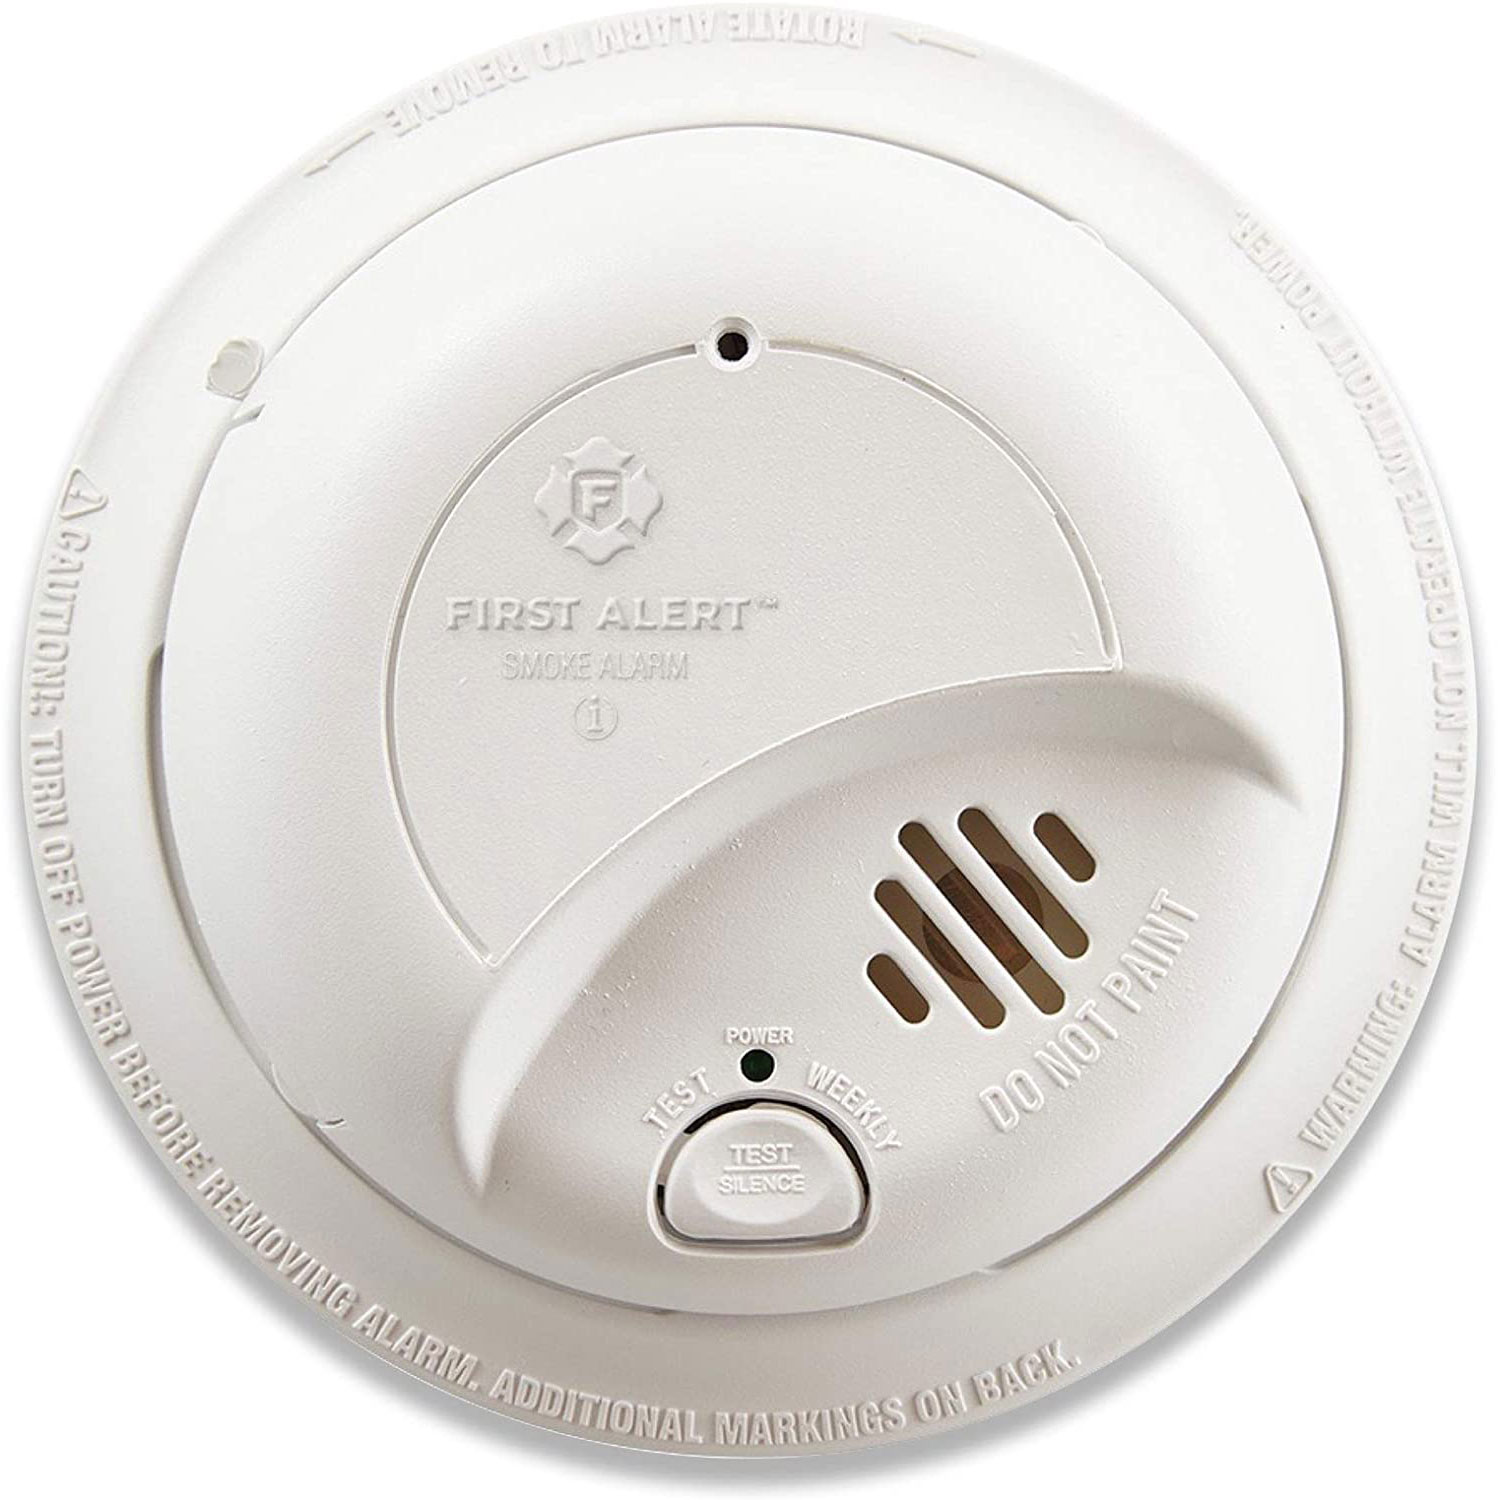 First Alert BRK Brands Hardwired Ionization Smoke Alarm with 10-Year Sealed Battery, 9120LBL